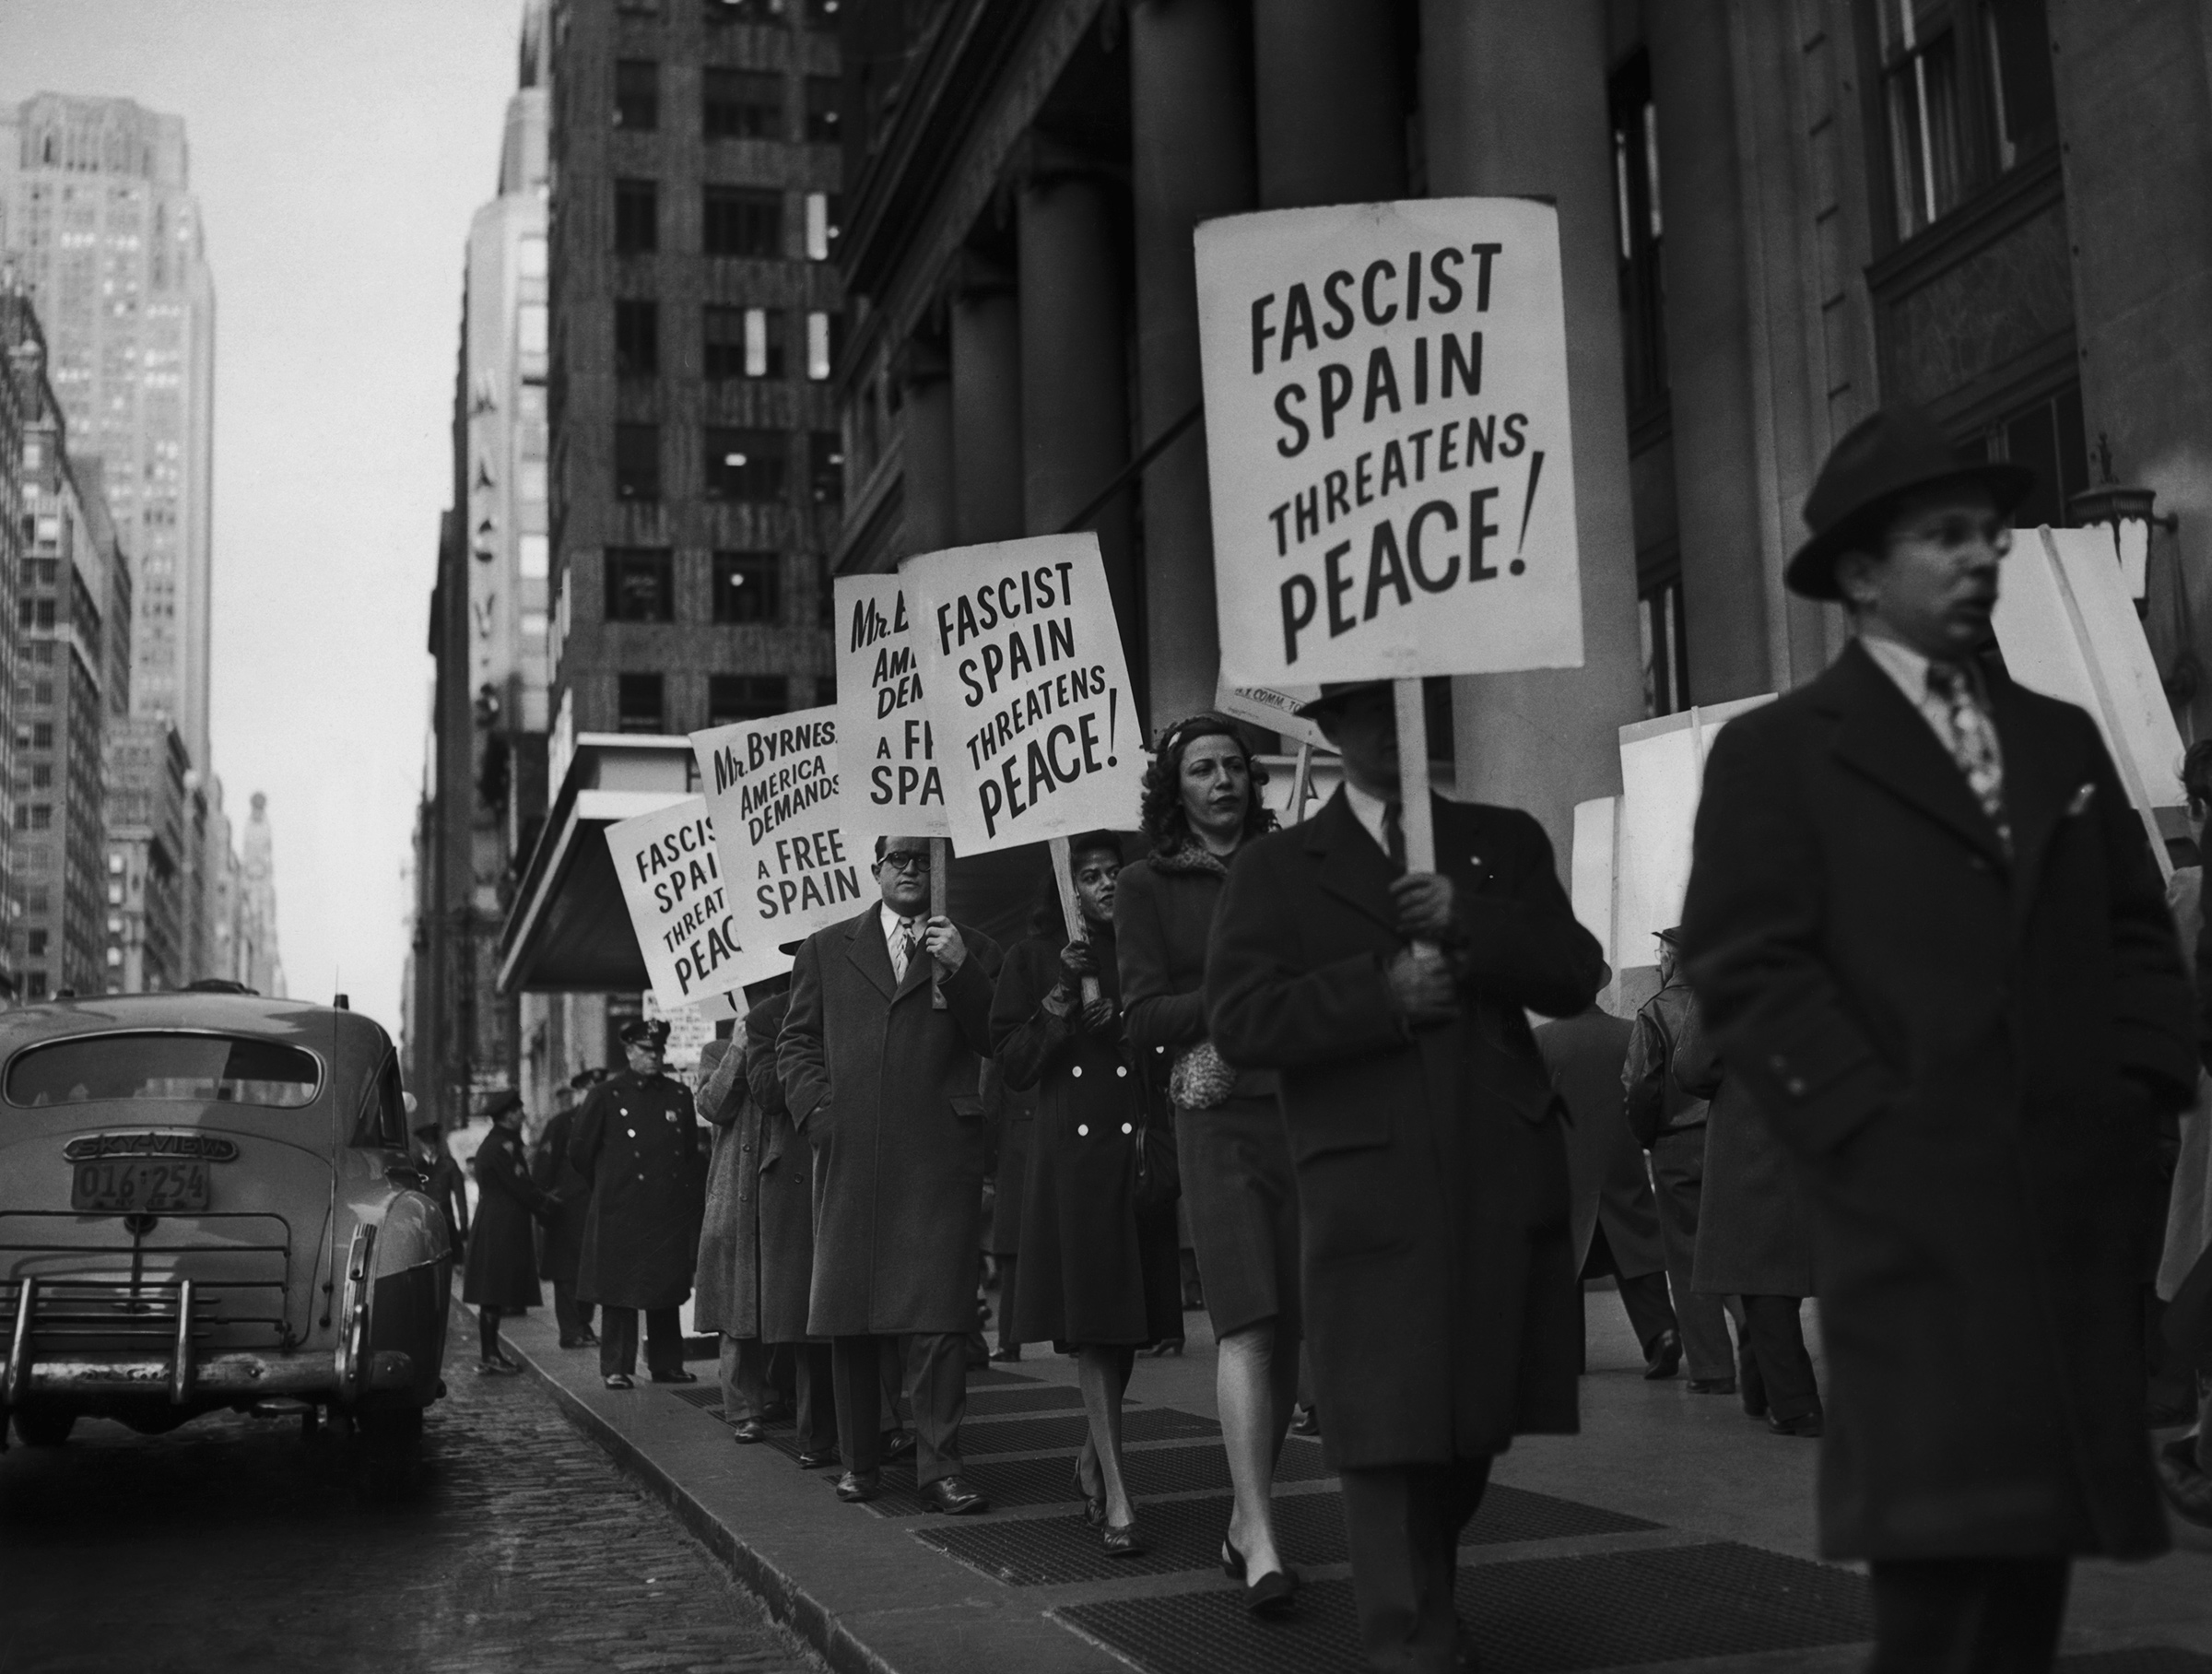 A demonstration against Francisco Franco outside the headquarters of the United States delegation to the United Nations in the Hotel Pennsylvania in New York City, Jan. 2, 1946.